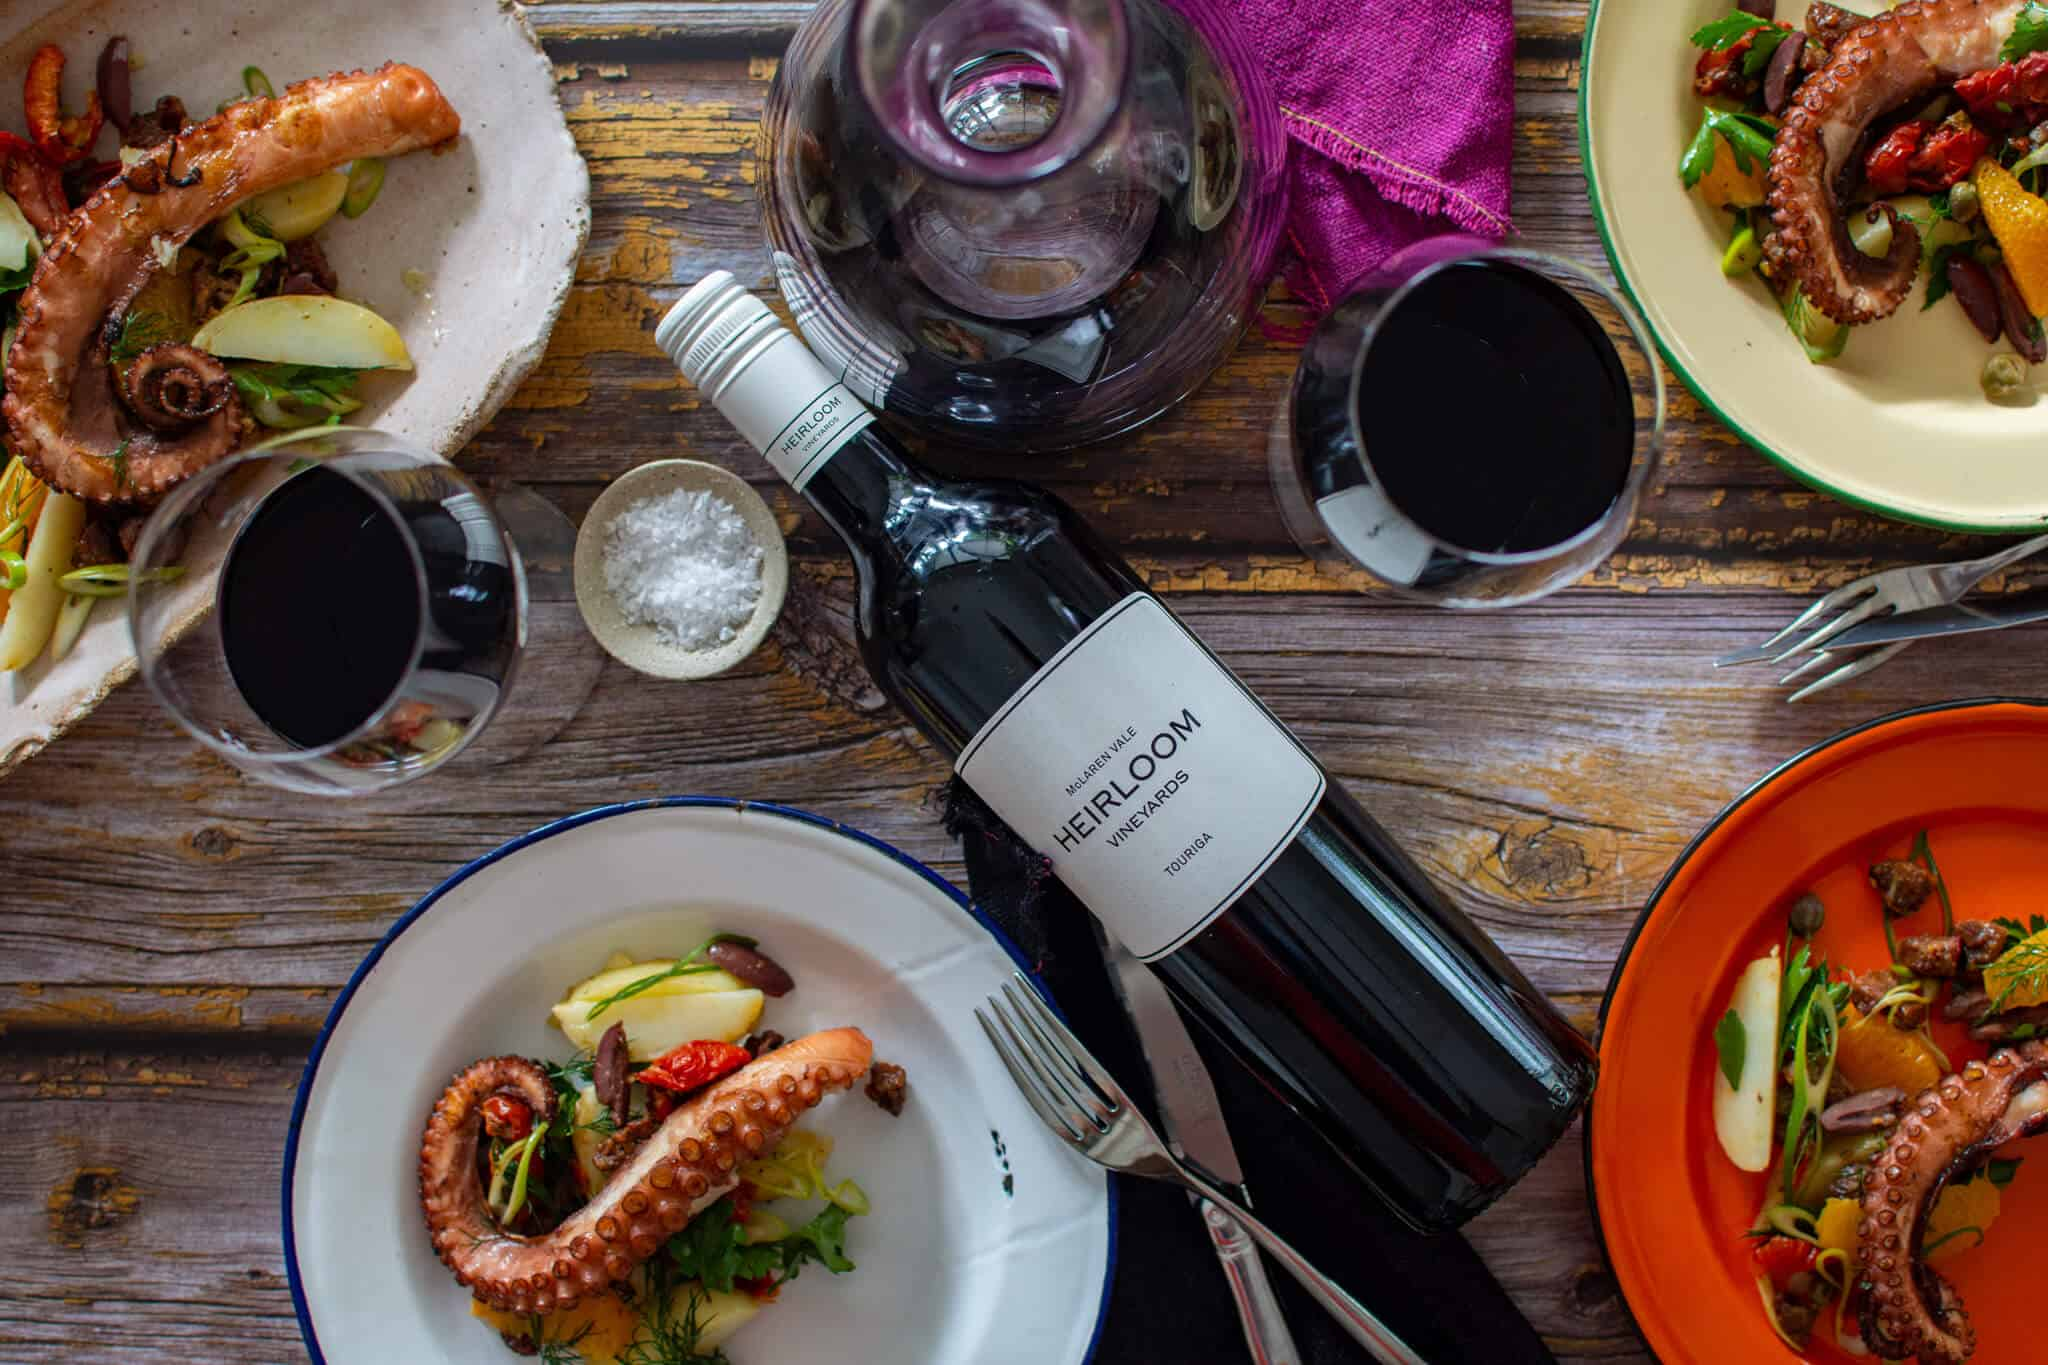 birds eye view of grilled octopus salad, wine glasses, cutlery and bottle of heirloom wine